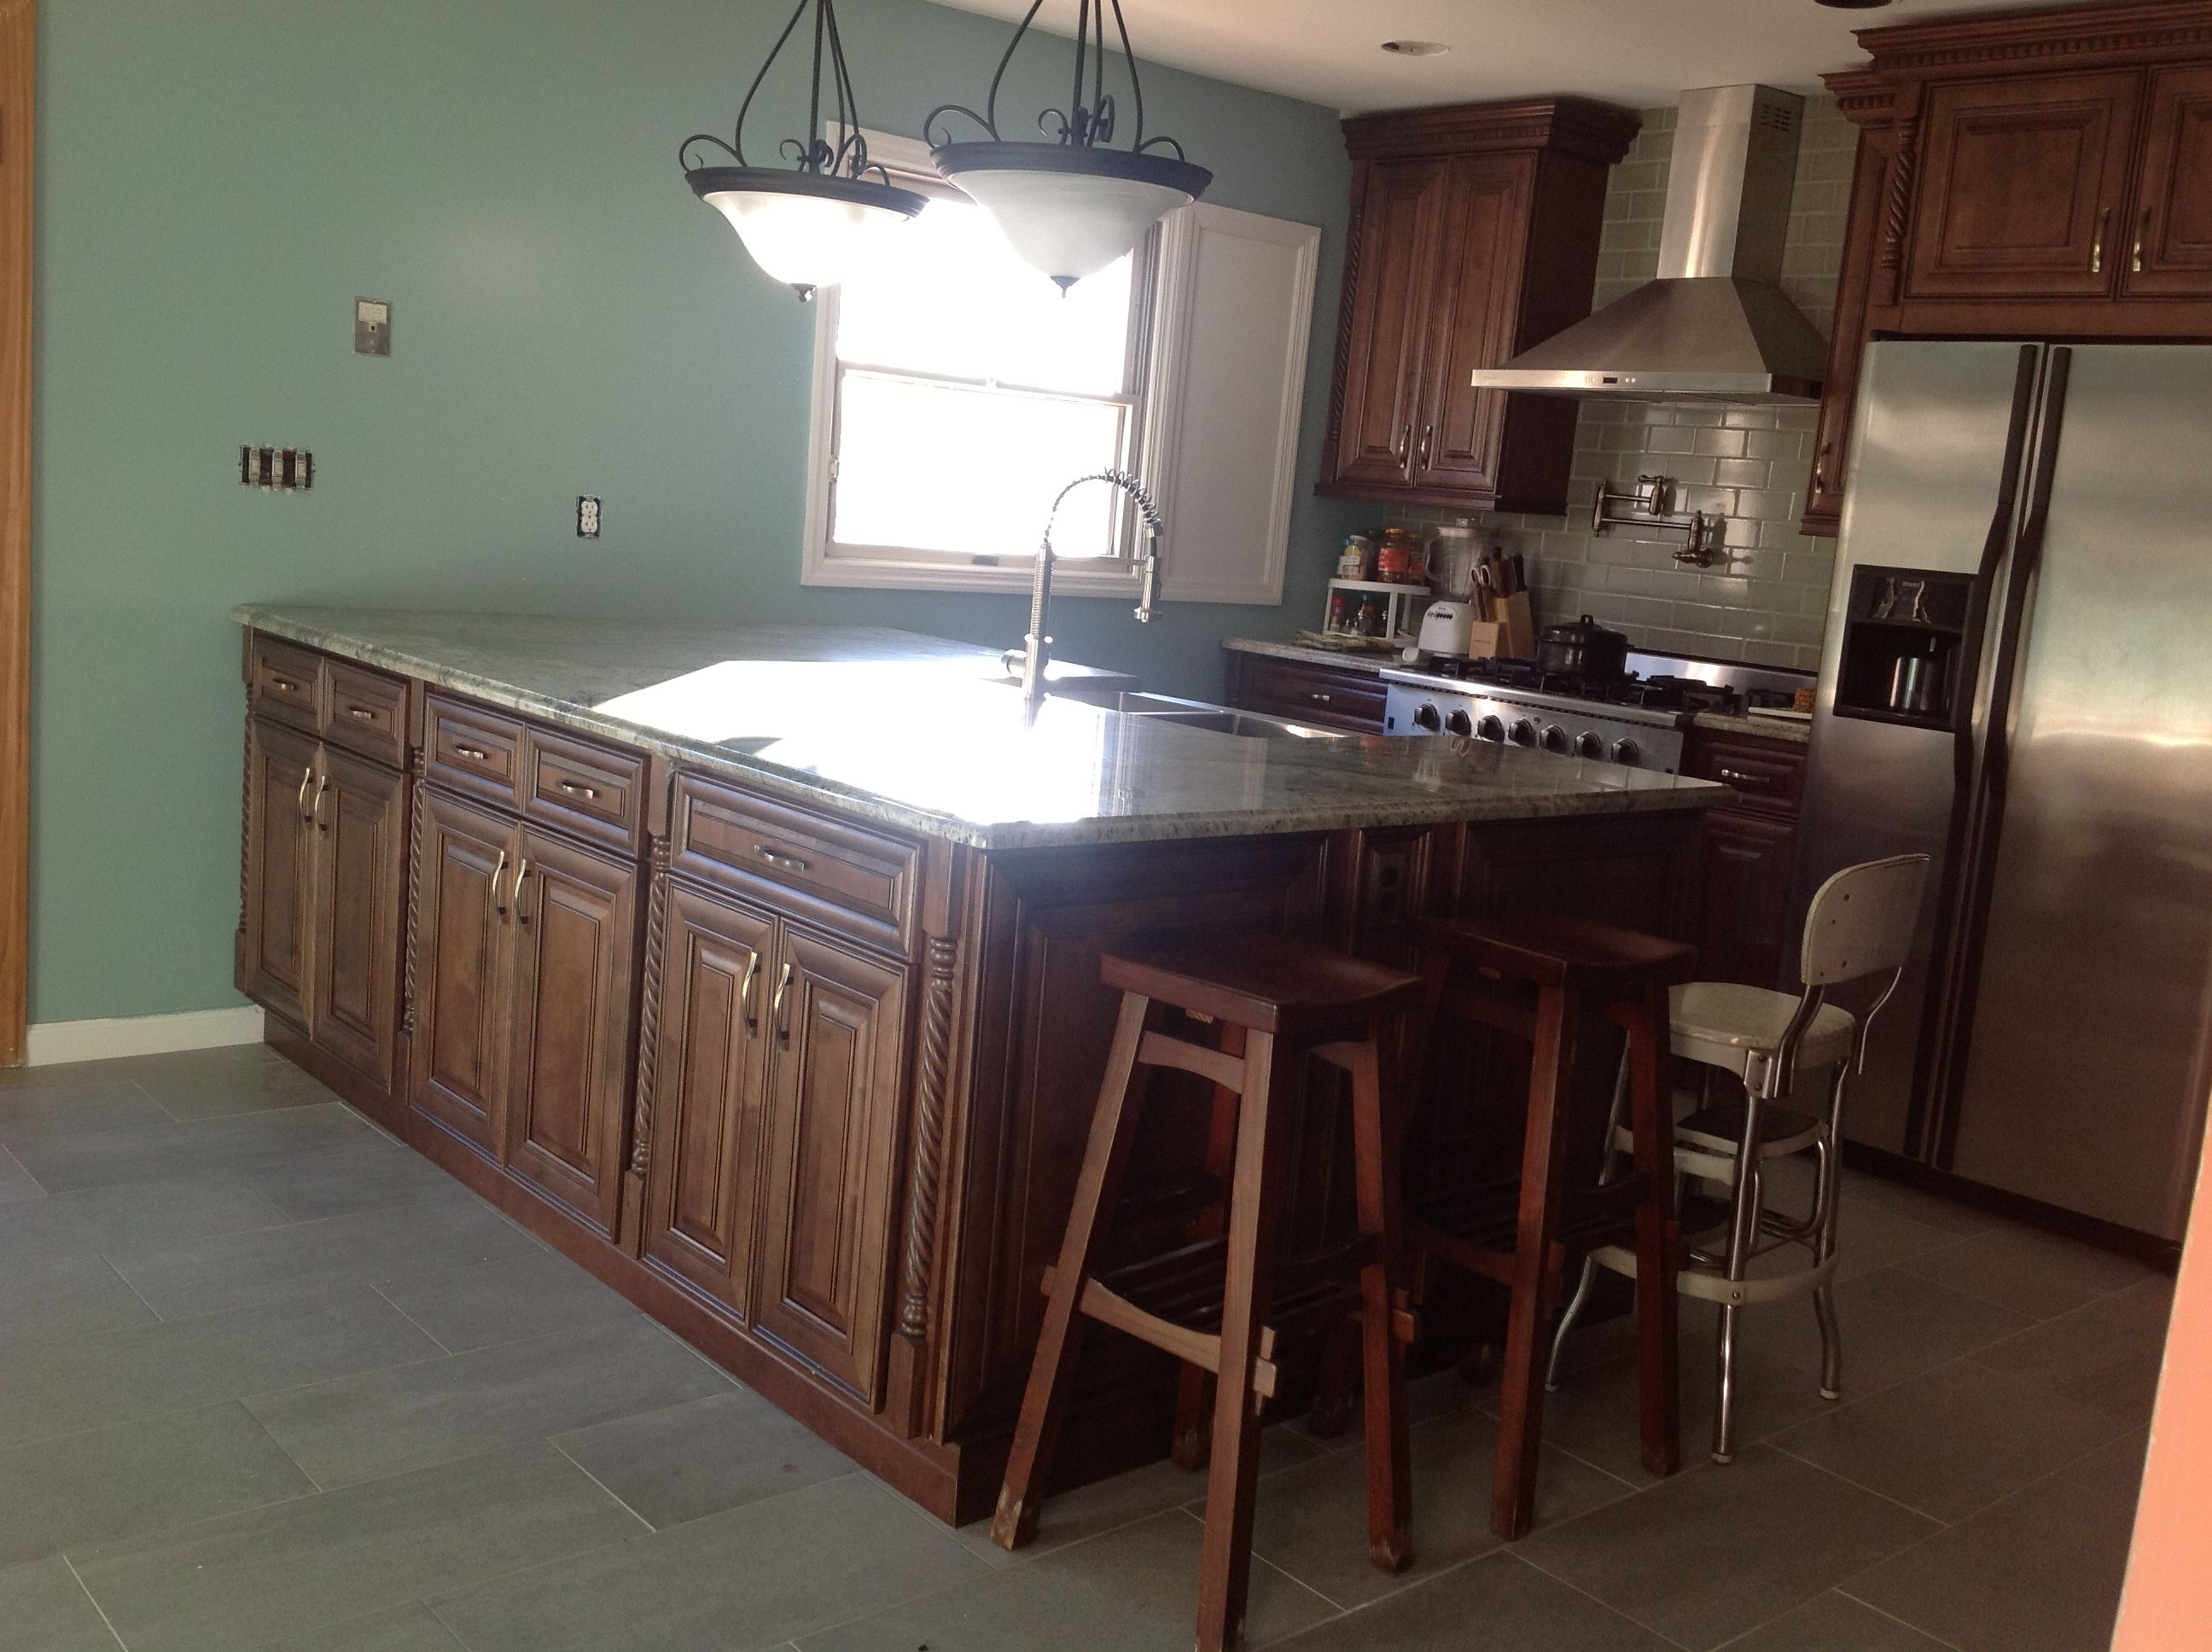 telstar cabinetry in morris county new jersey kitchen cabinets nj Chocolate Maple Glazed Dealer E Main St Denville NJ Brand J K Cabinetry works with Pappachen Interiors home styling